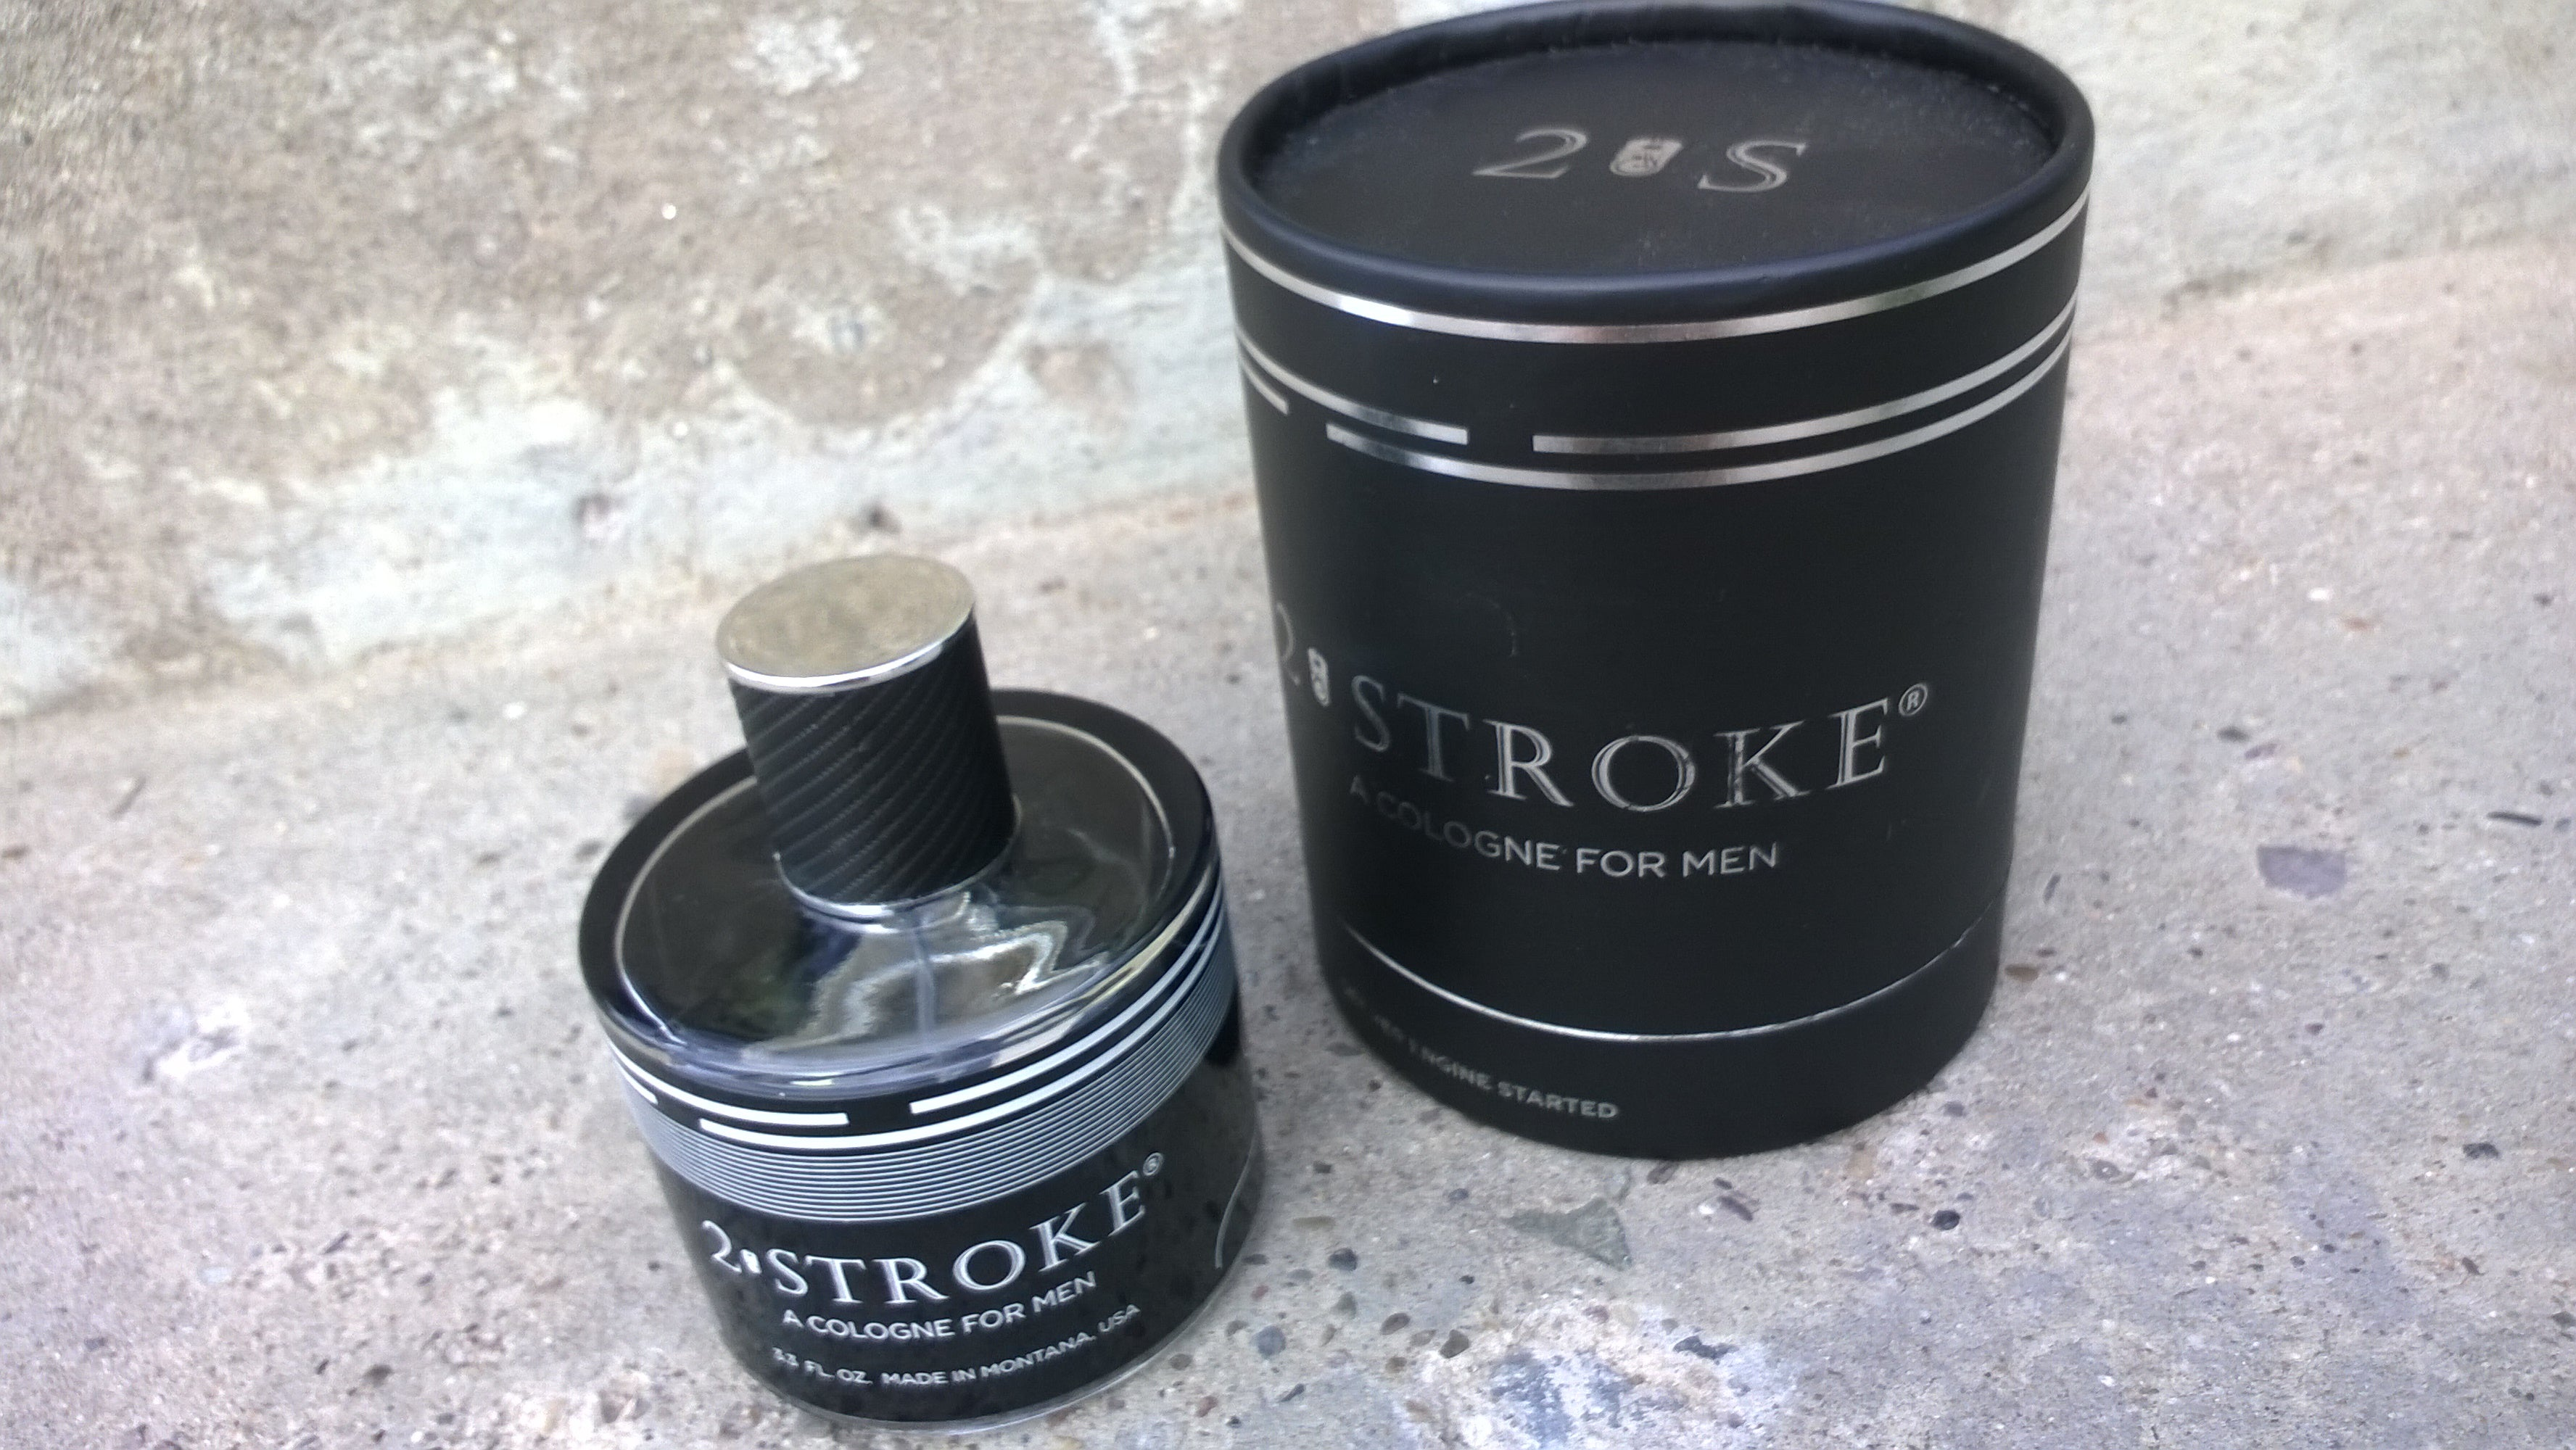 Two Stroke Cologne